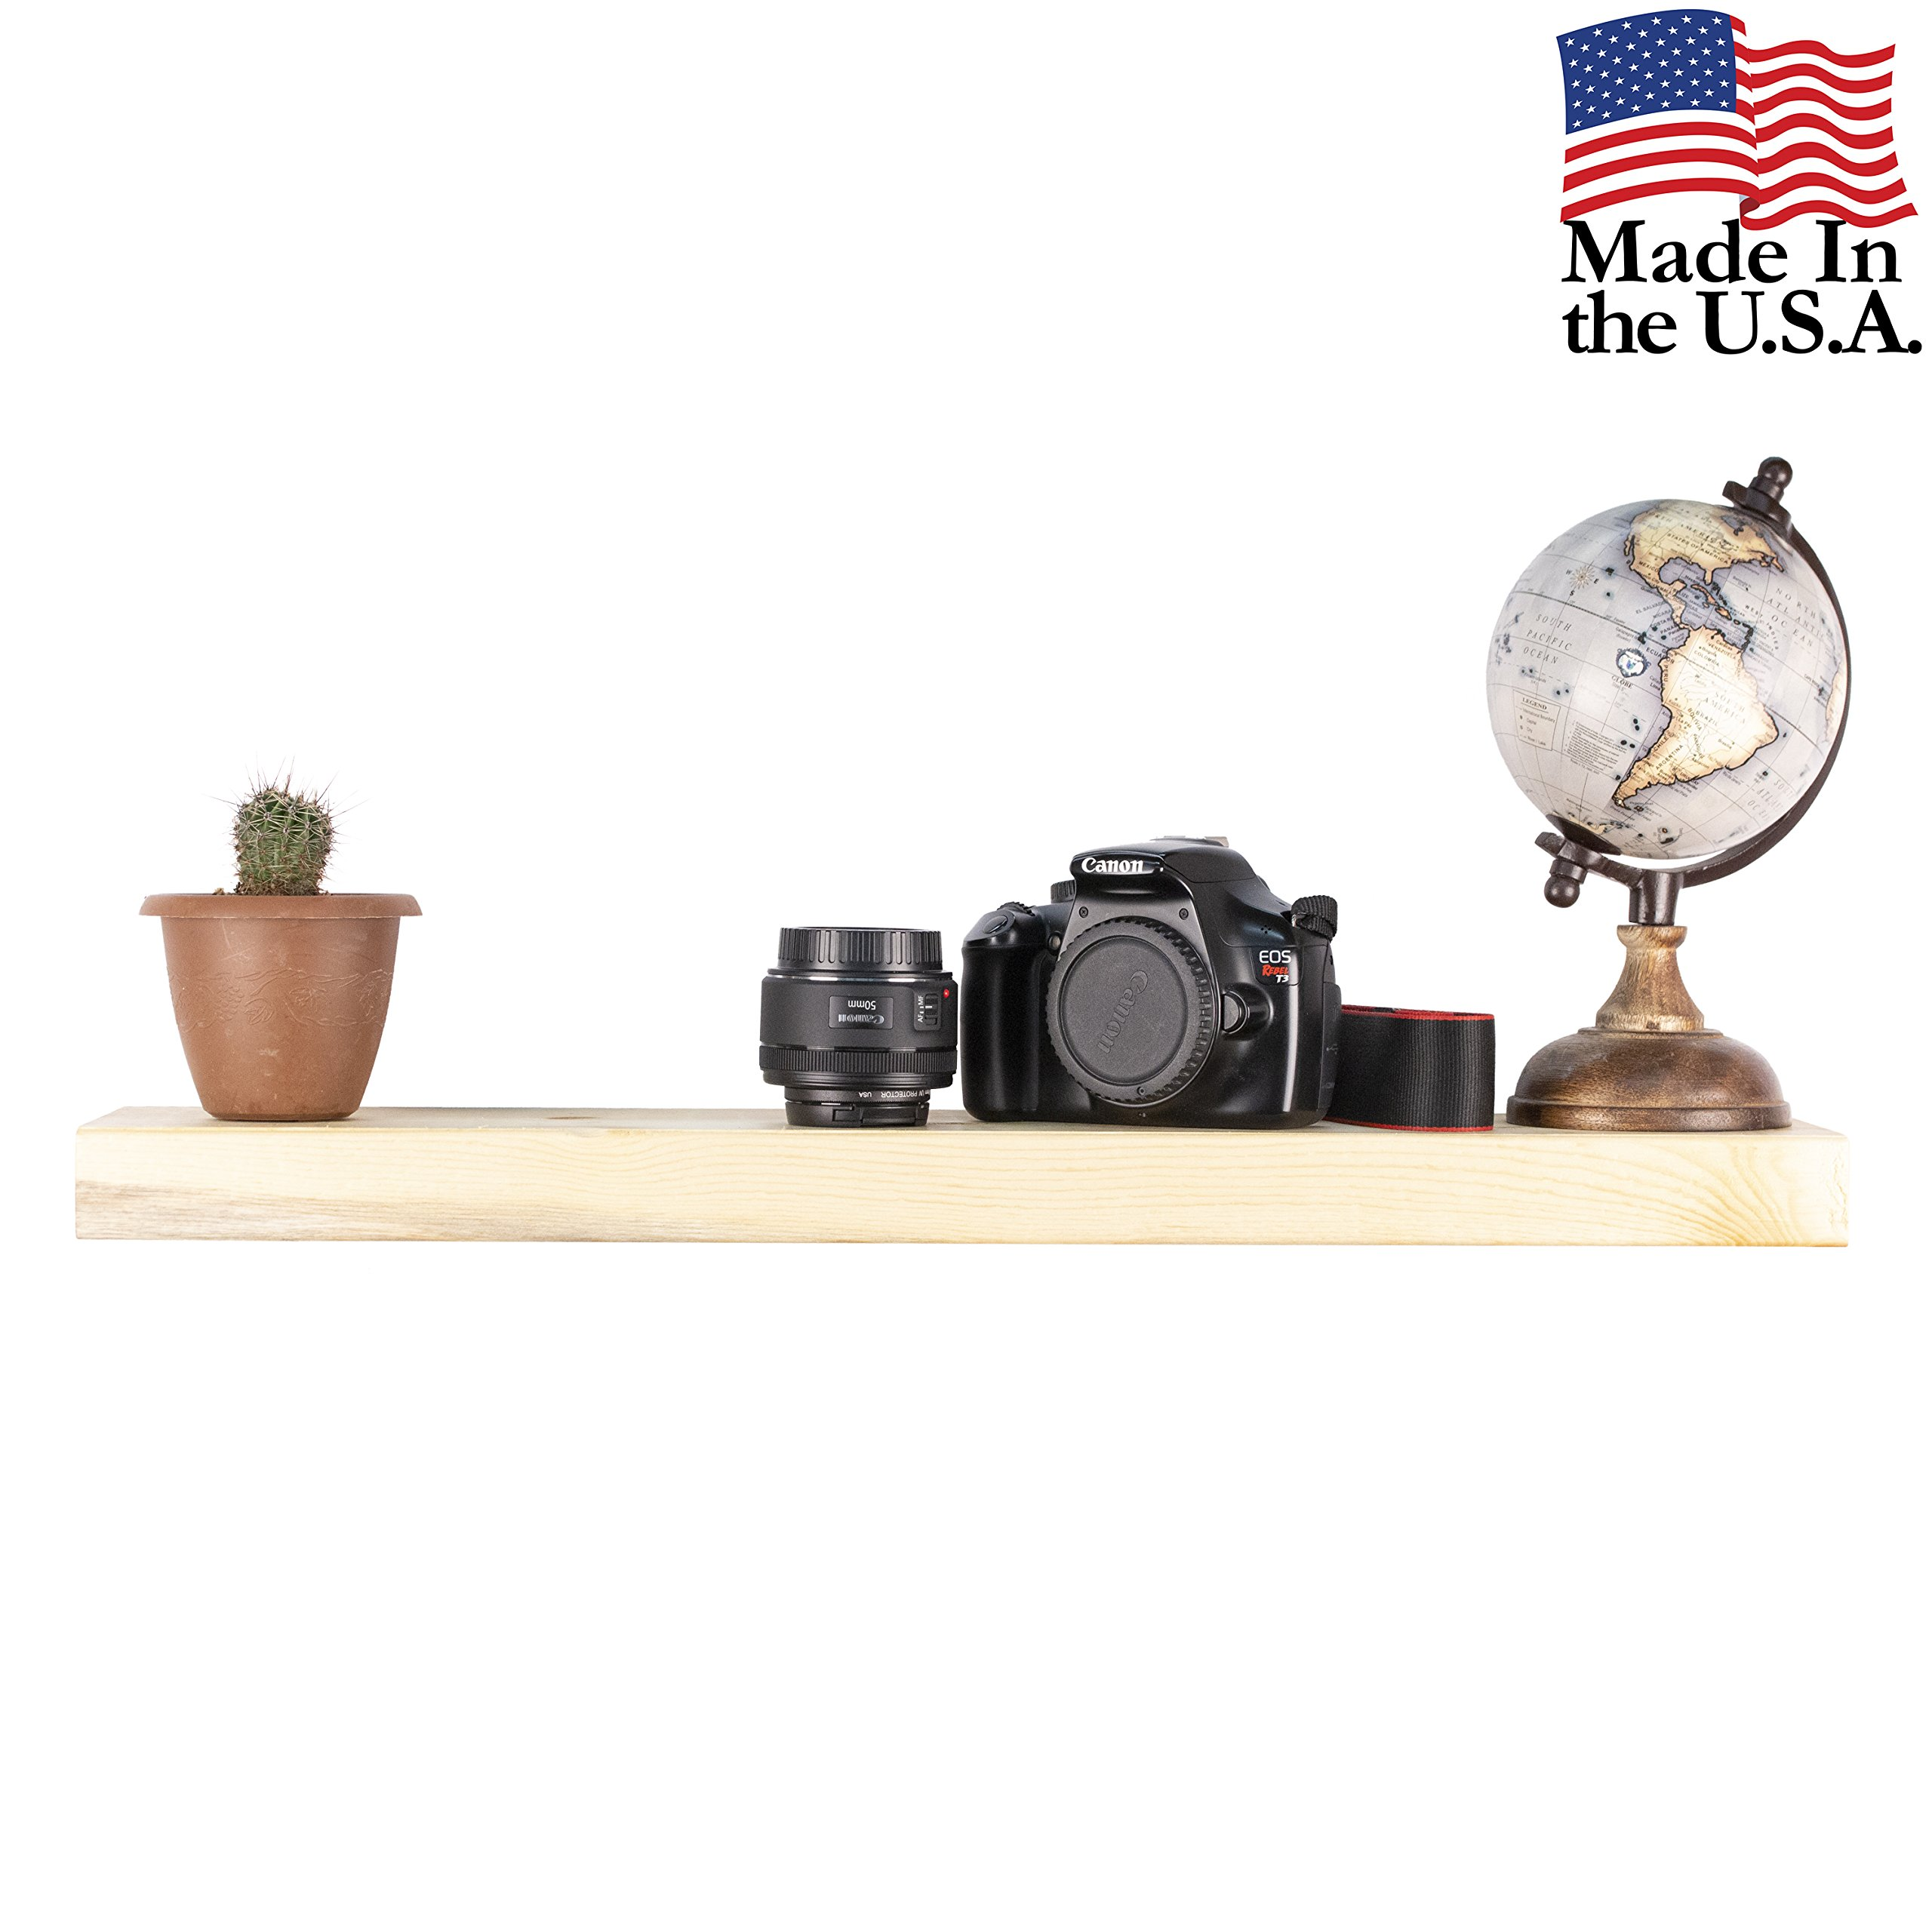 Floating Shelves Wall Mounted Shelf - Rustic Wood Decor Hanging for Bathroom Kitchen Bedrooms Living Room or Office Walls - Sturdy & Decorative Shelving Storage Spice Rack - USA Made - 2 Foot Natural